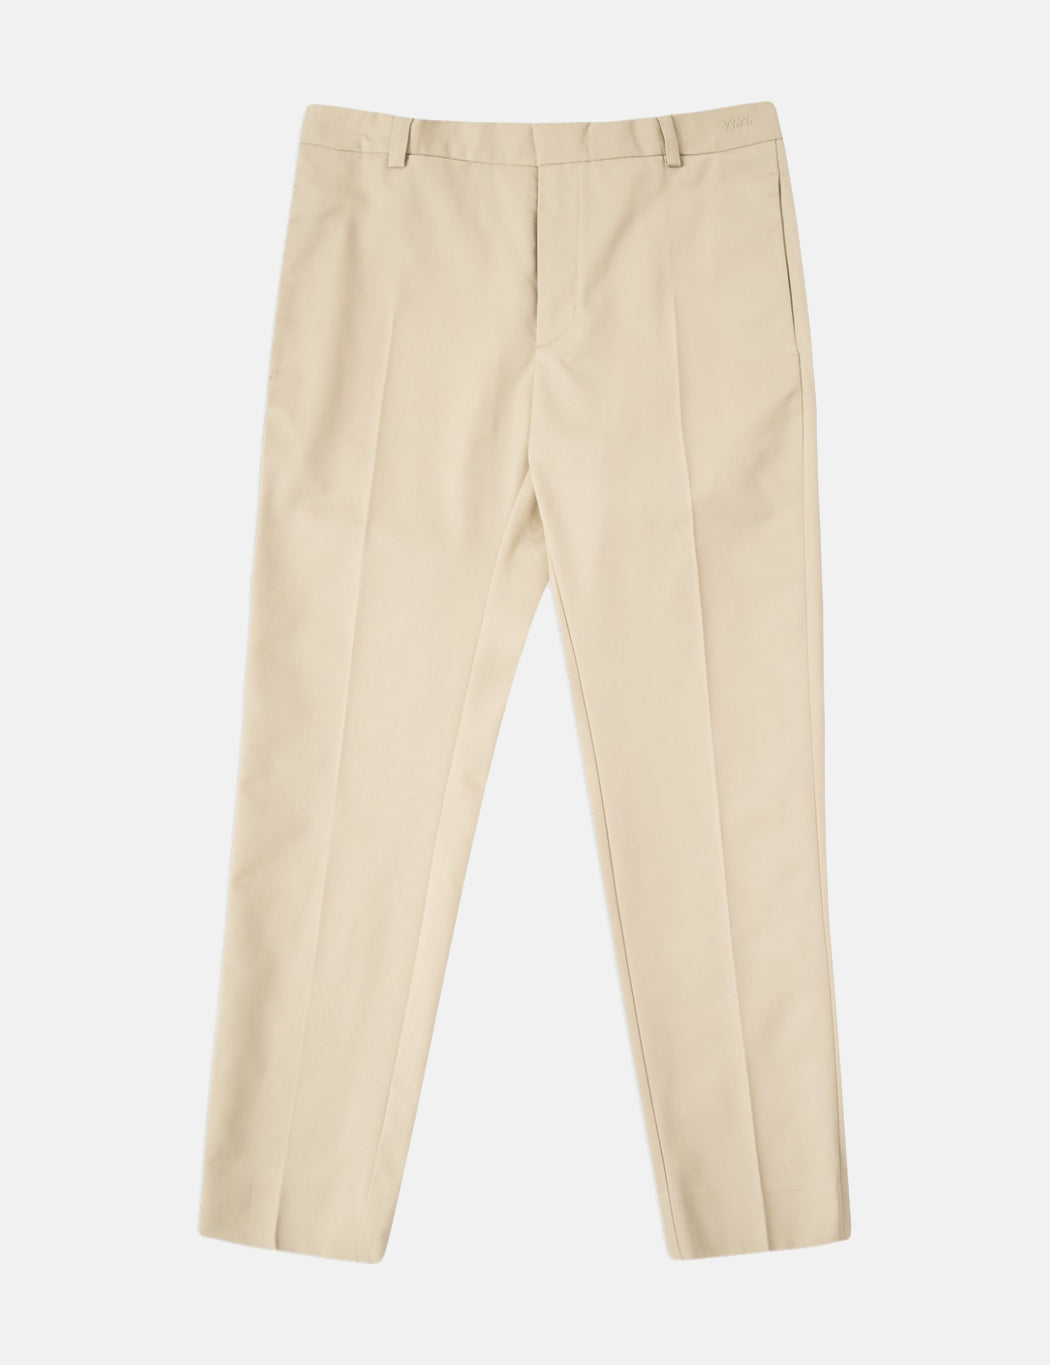 Wood Wood Tristan Trousers - Light Khaki | URBAN EXCESS.